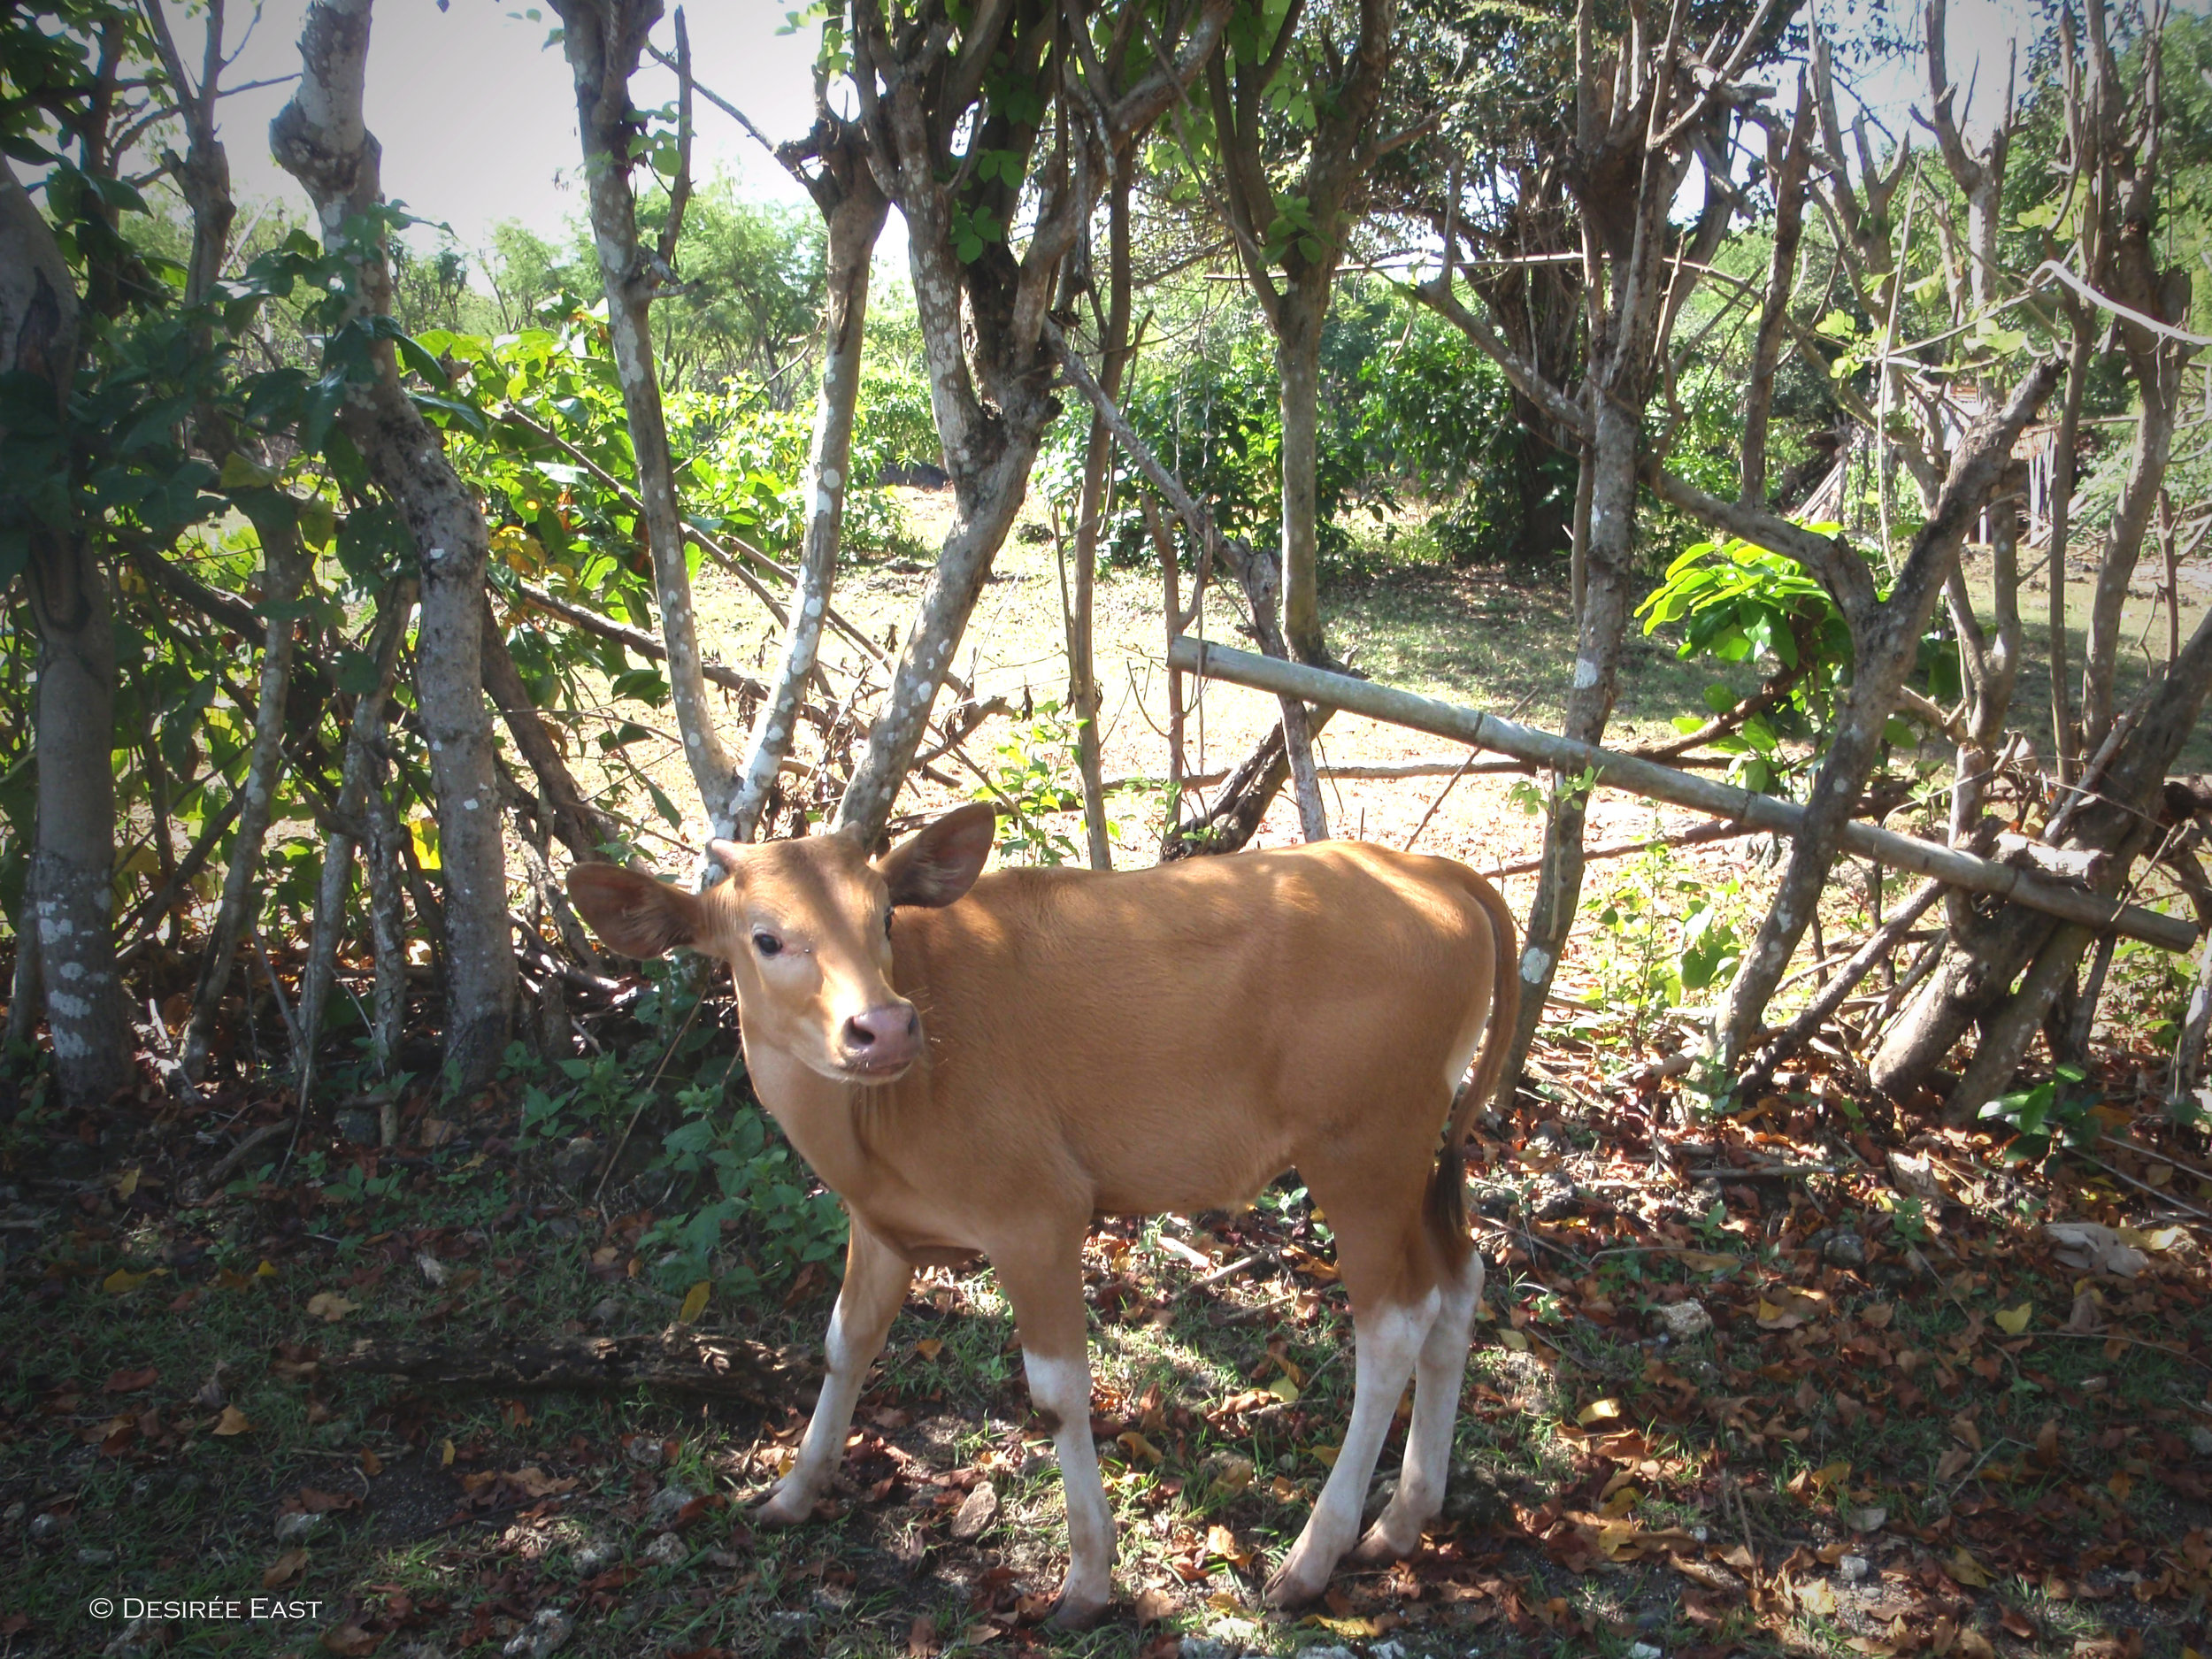 cute little side-of-the-road calf. bali, indonesia. photo by desiree east